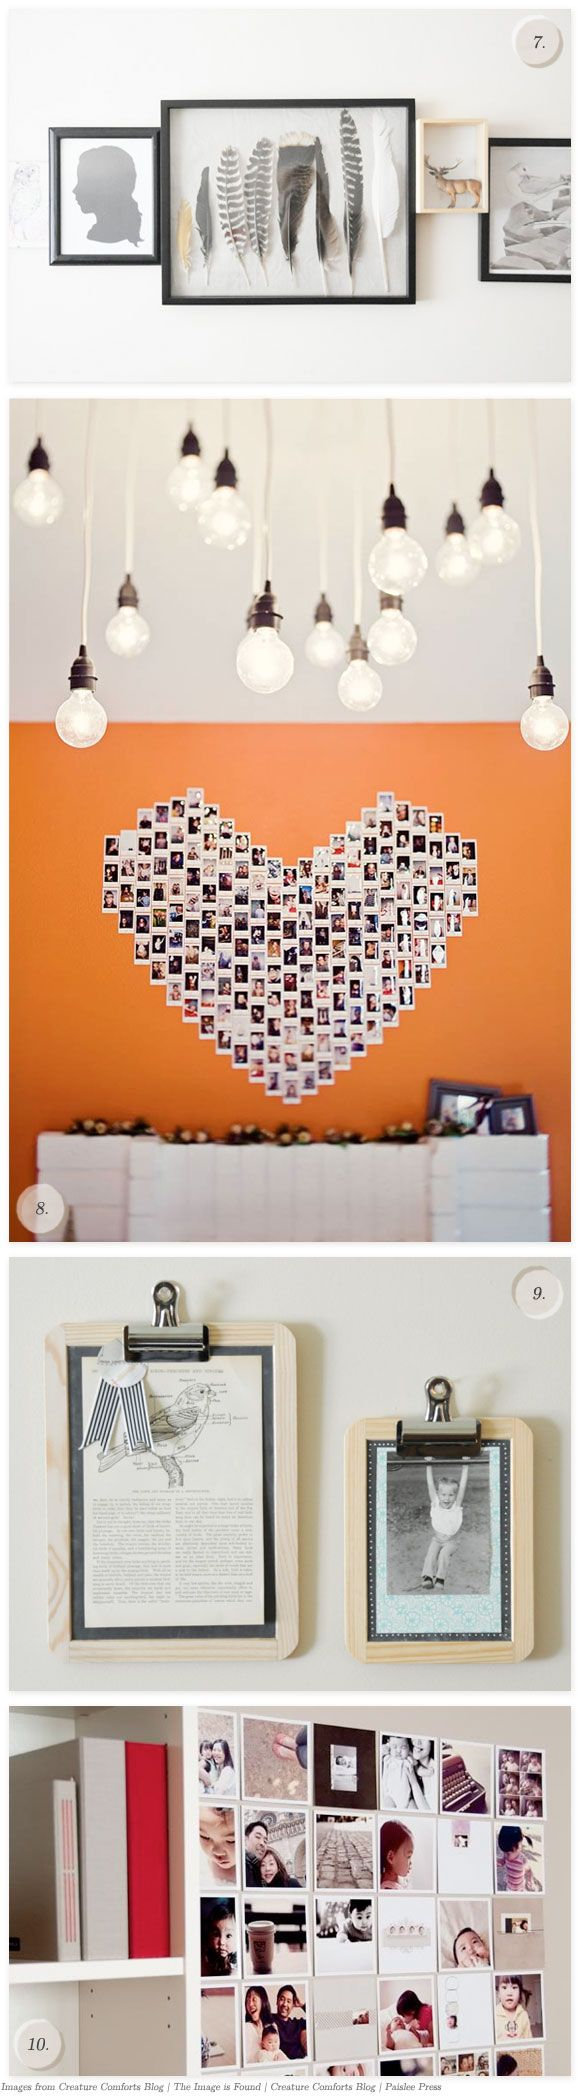 mmmm... A graphic using the photos customers sent in of their Lombok items in their homes (December promo?) duplicated to create a giant heart shape collage of of the photos, then hang one in each of the side windows for valentines event display? (Love the orange display of happy clients in their glasses)